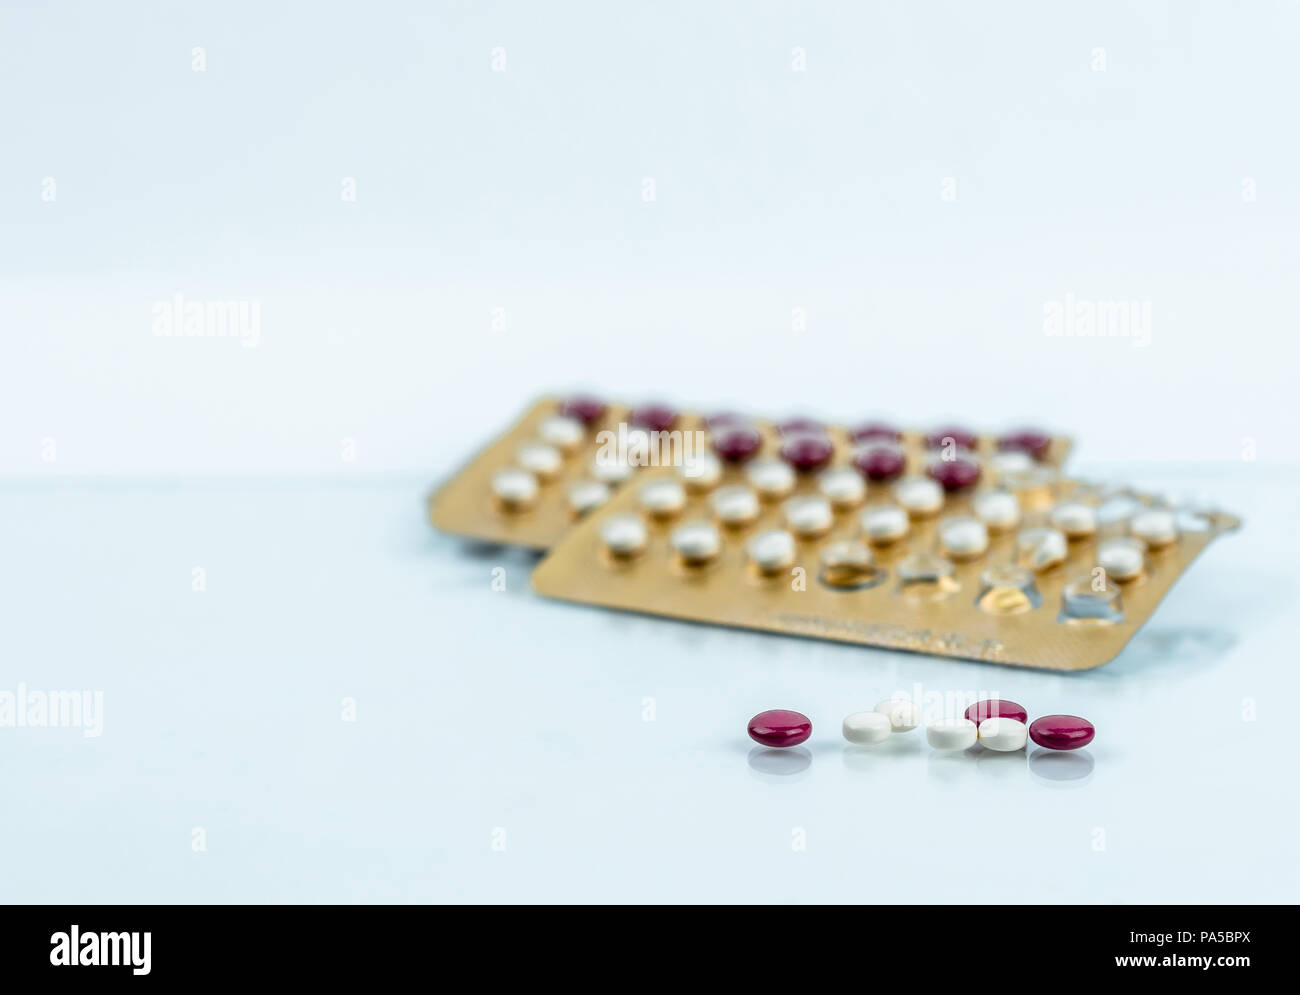 Oral contraceptive pills. Birth control pills. Hormones for contraception. Family planning, hormonal acne, gynecologist concept. Ovulate on birth cont - Stock Image